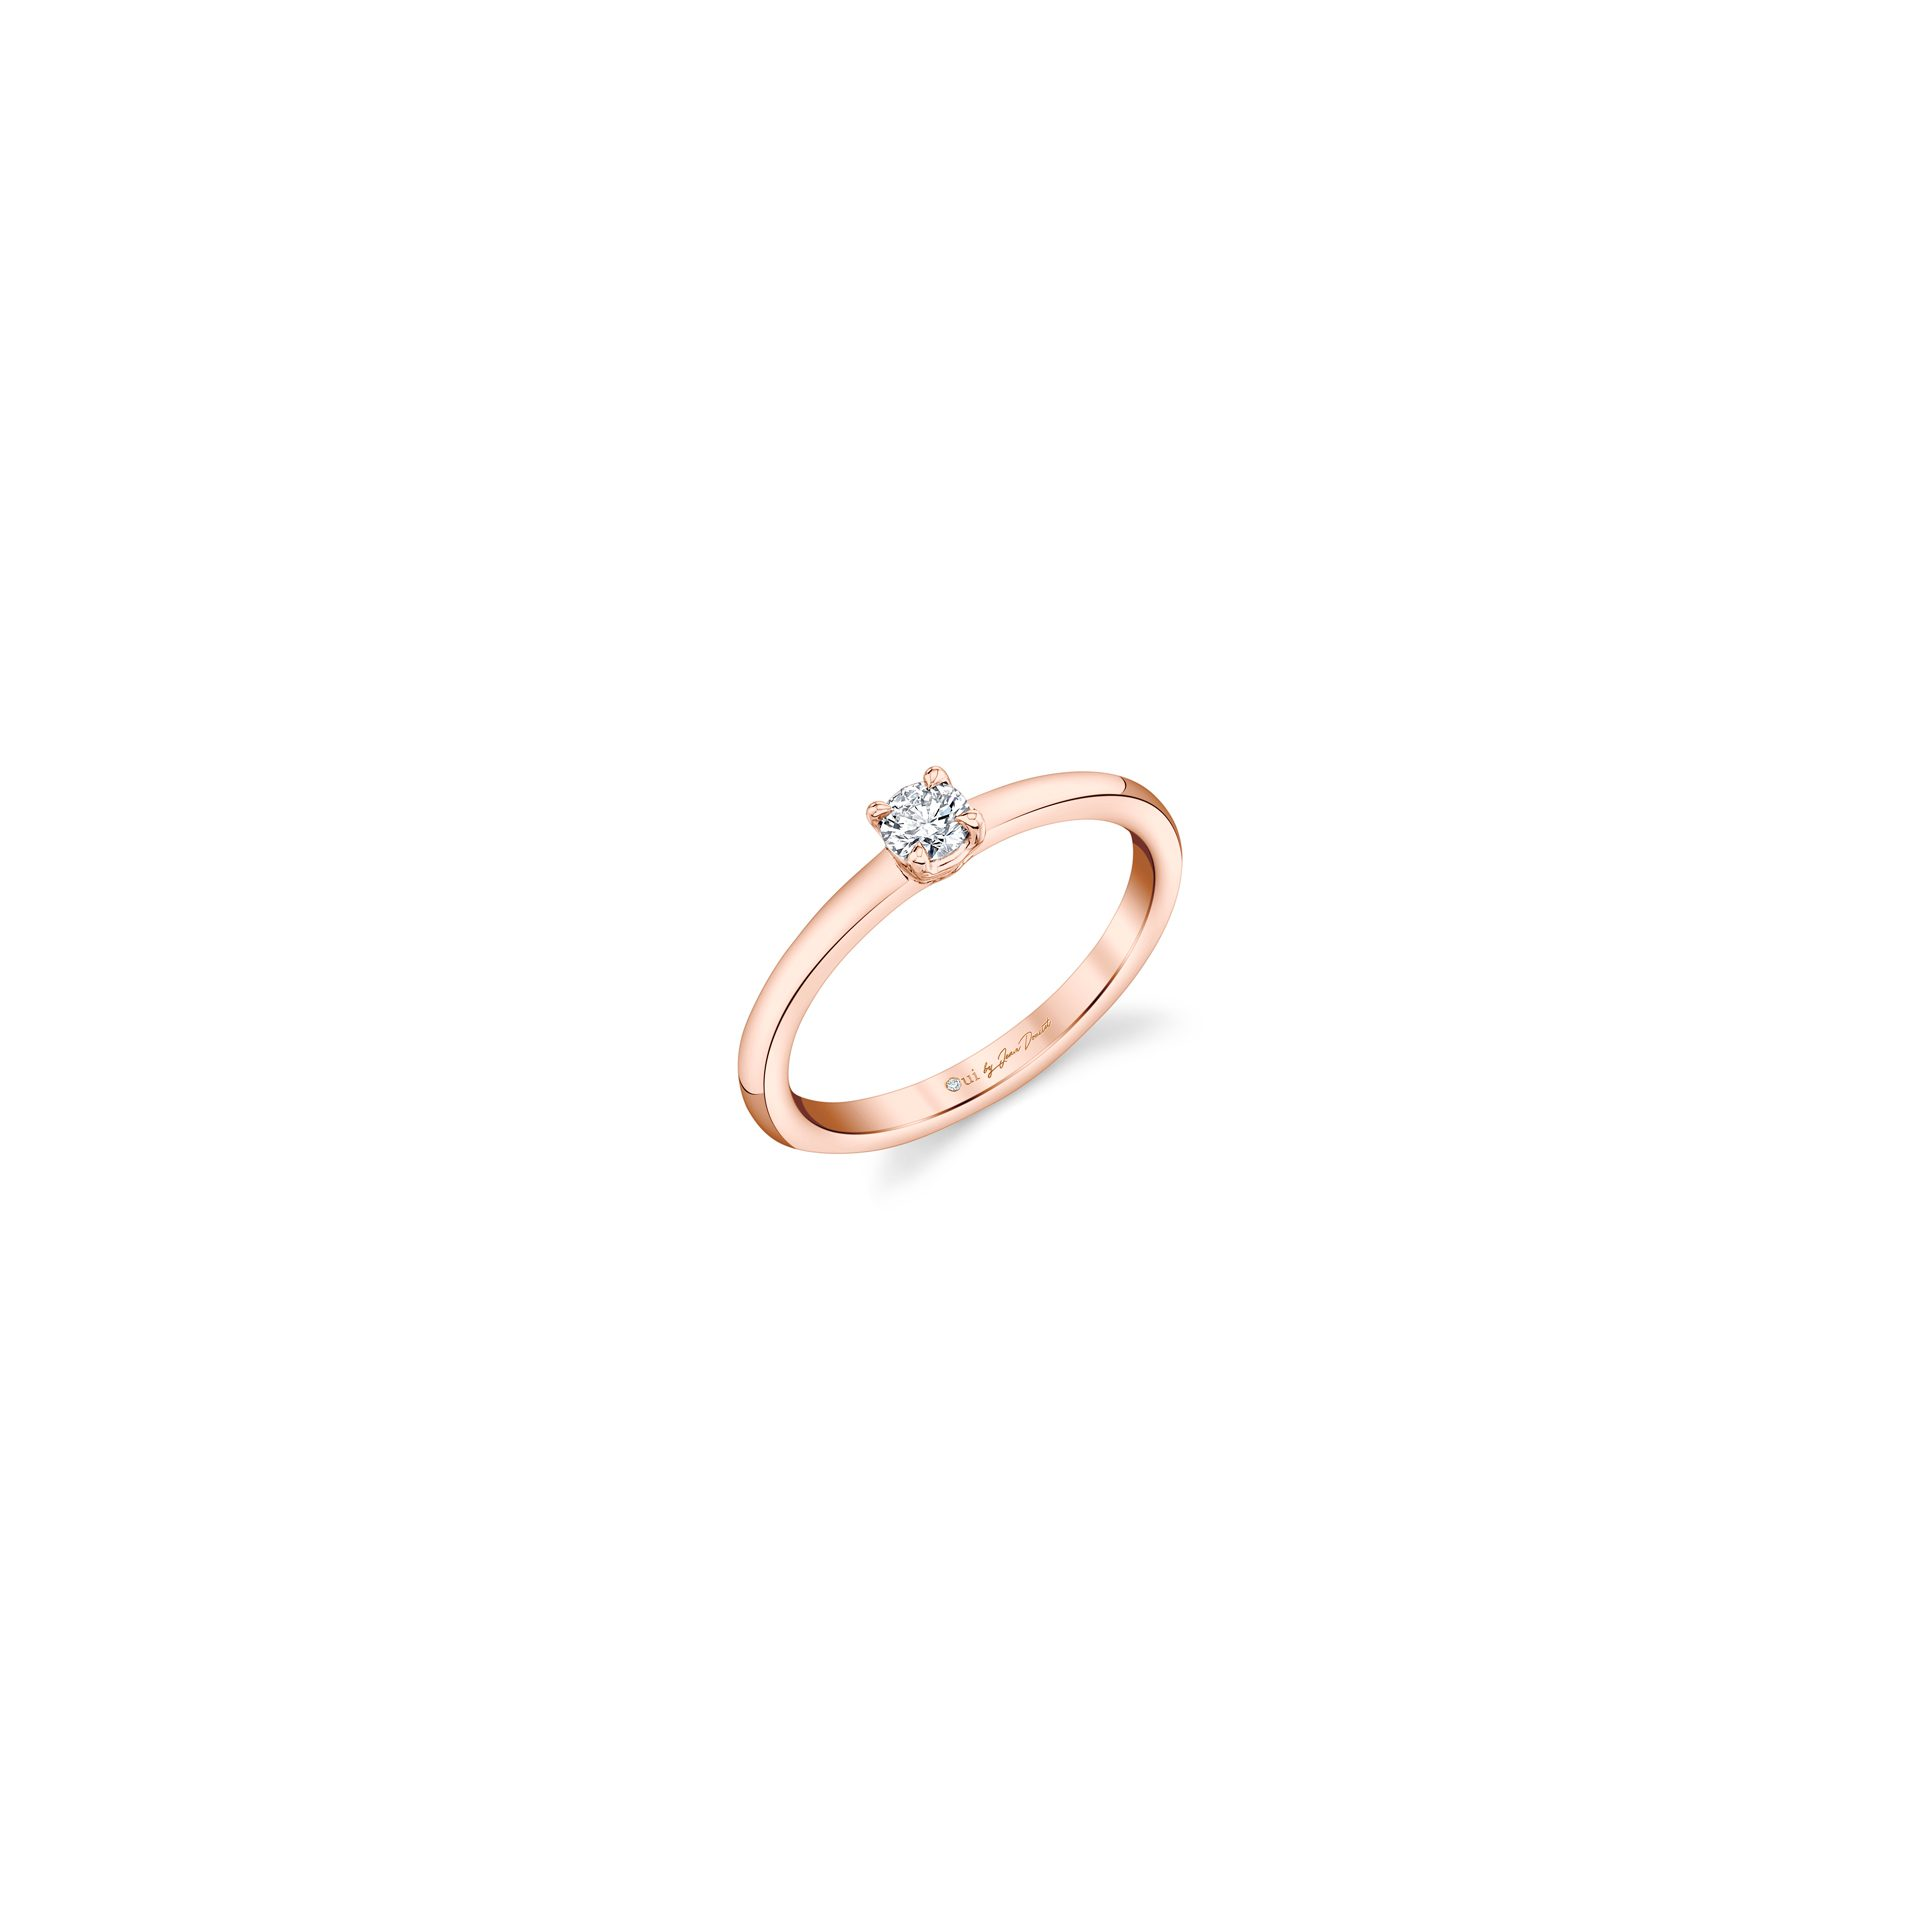 La Petite Round Brilliant Diamond Wedding Band in 18k Rose Gold Standing View by Oui by Jean Dousset